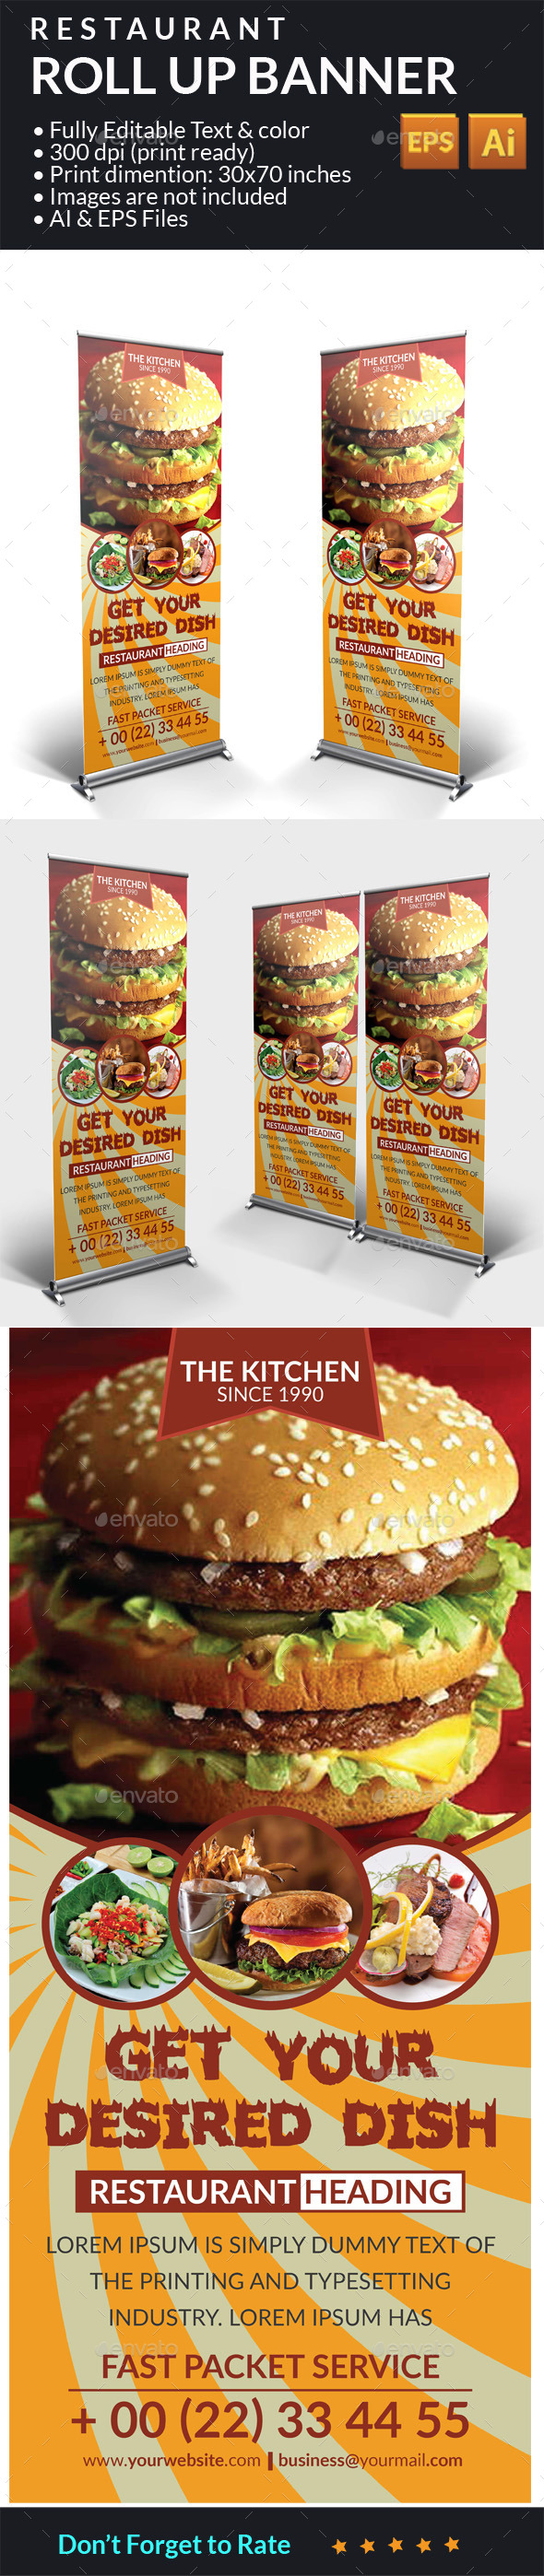 Restaurant Food Roll Up Banner - Signage Print Templates